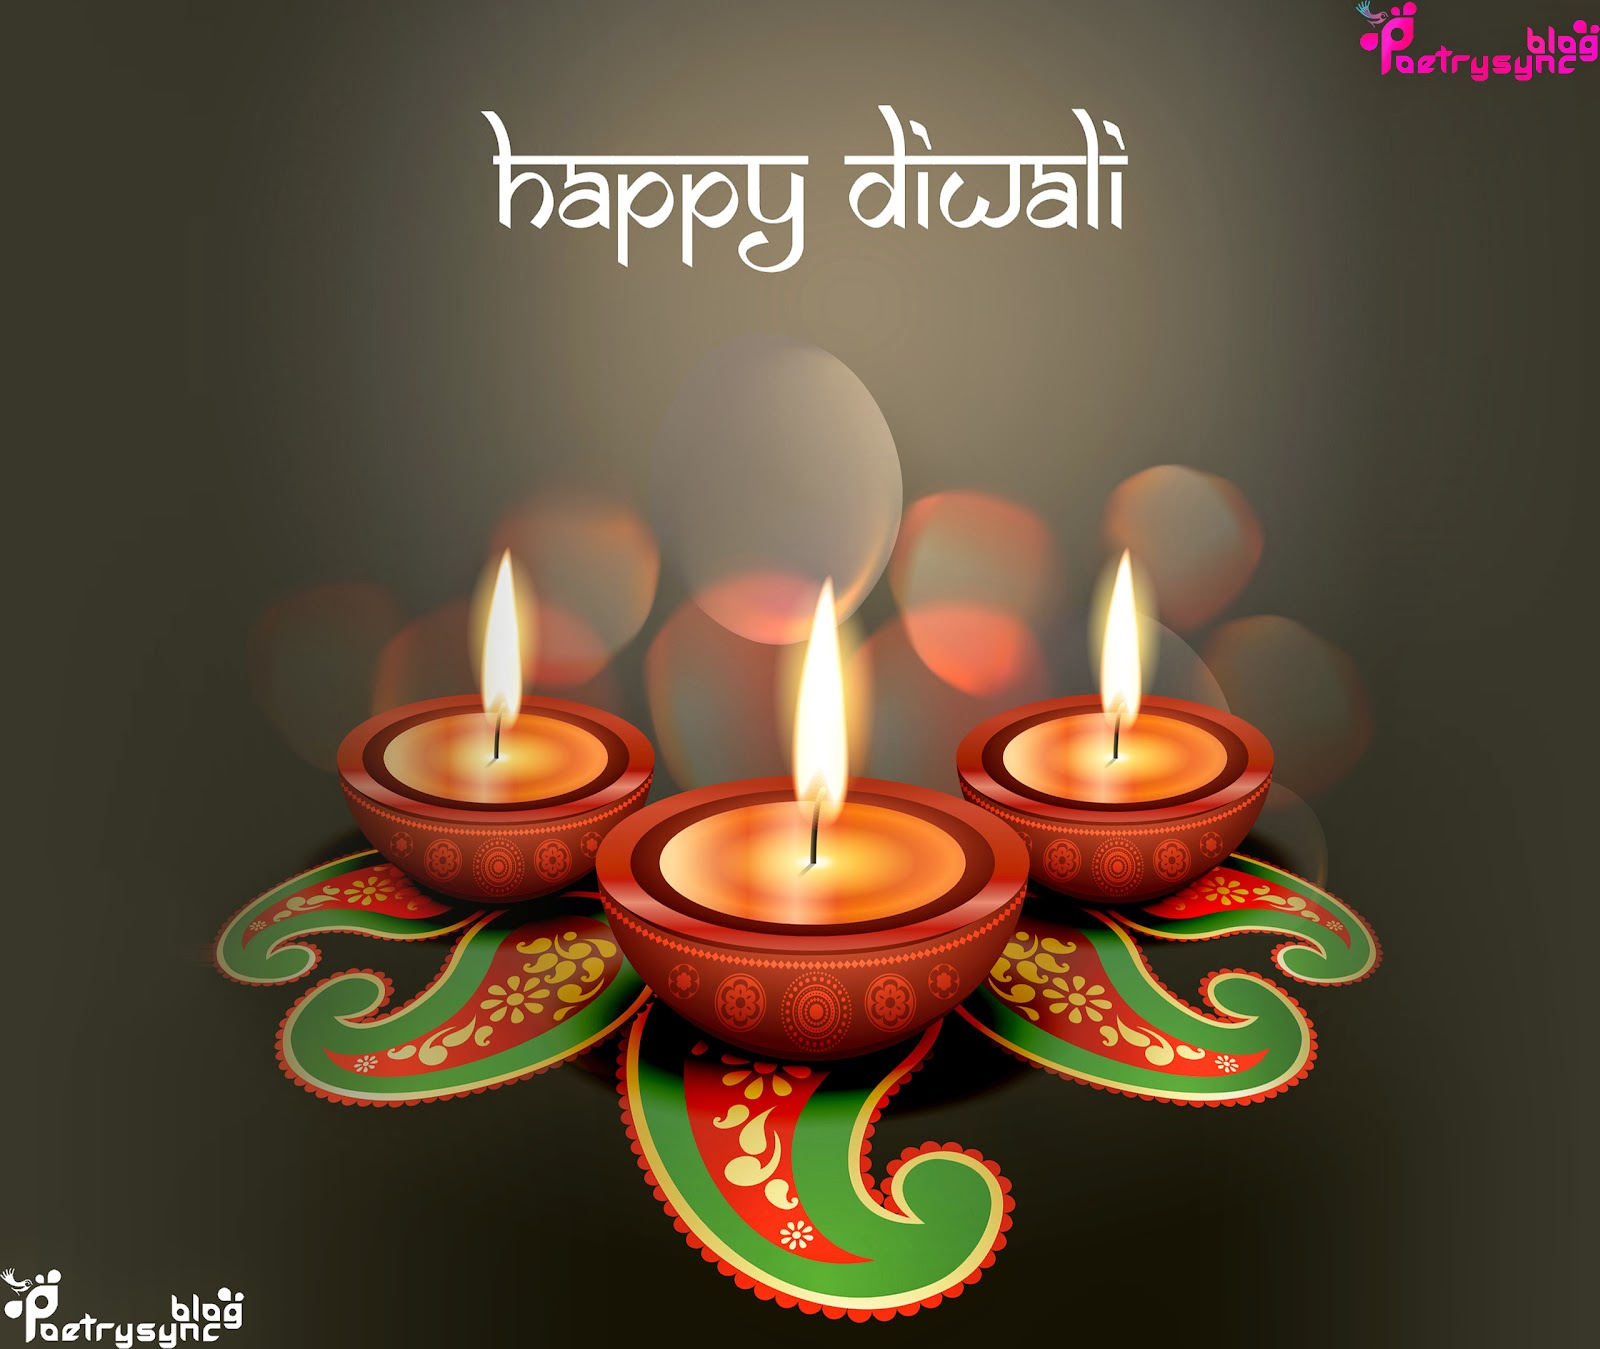 happy diwali festival wishes messages in english  happy diwali festival wishes messages in english poetry quotes